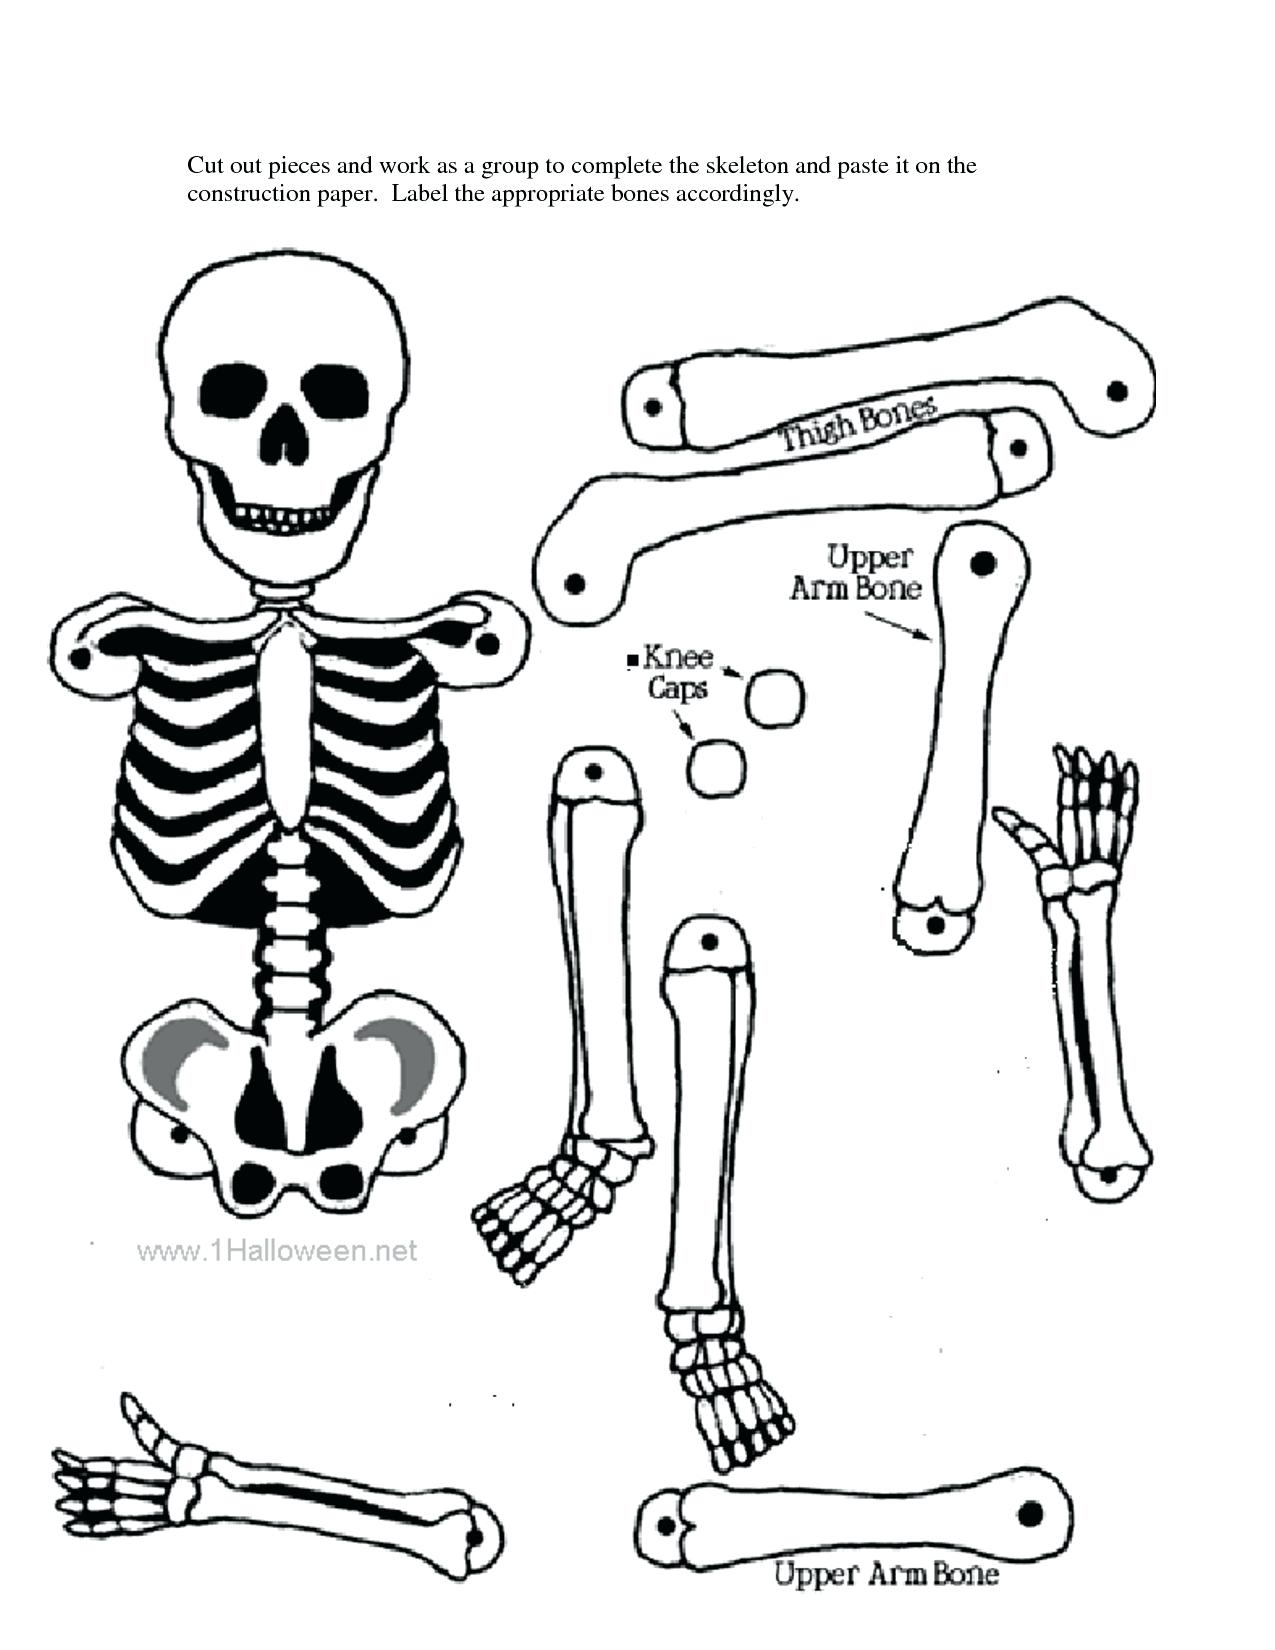 Human Skeletal System Drawing At Getdrawings